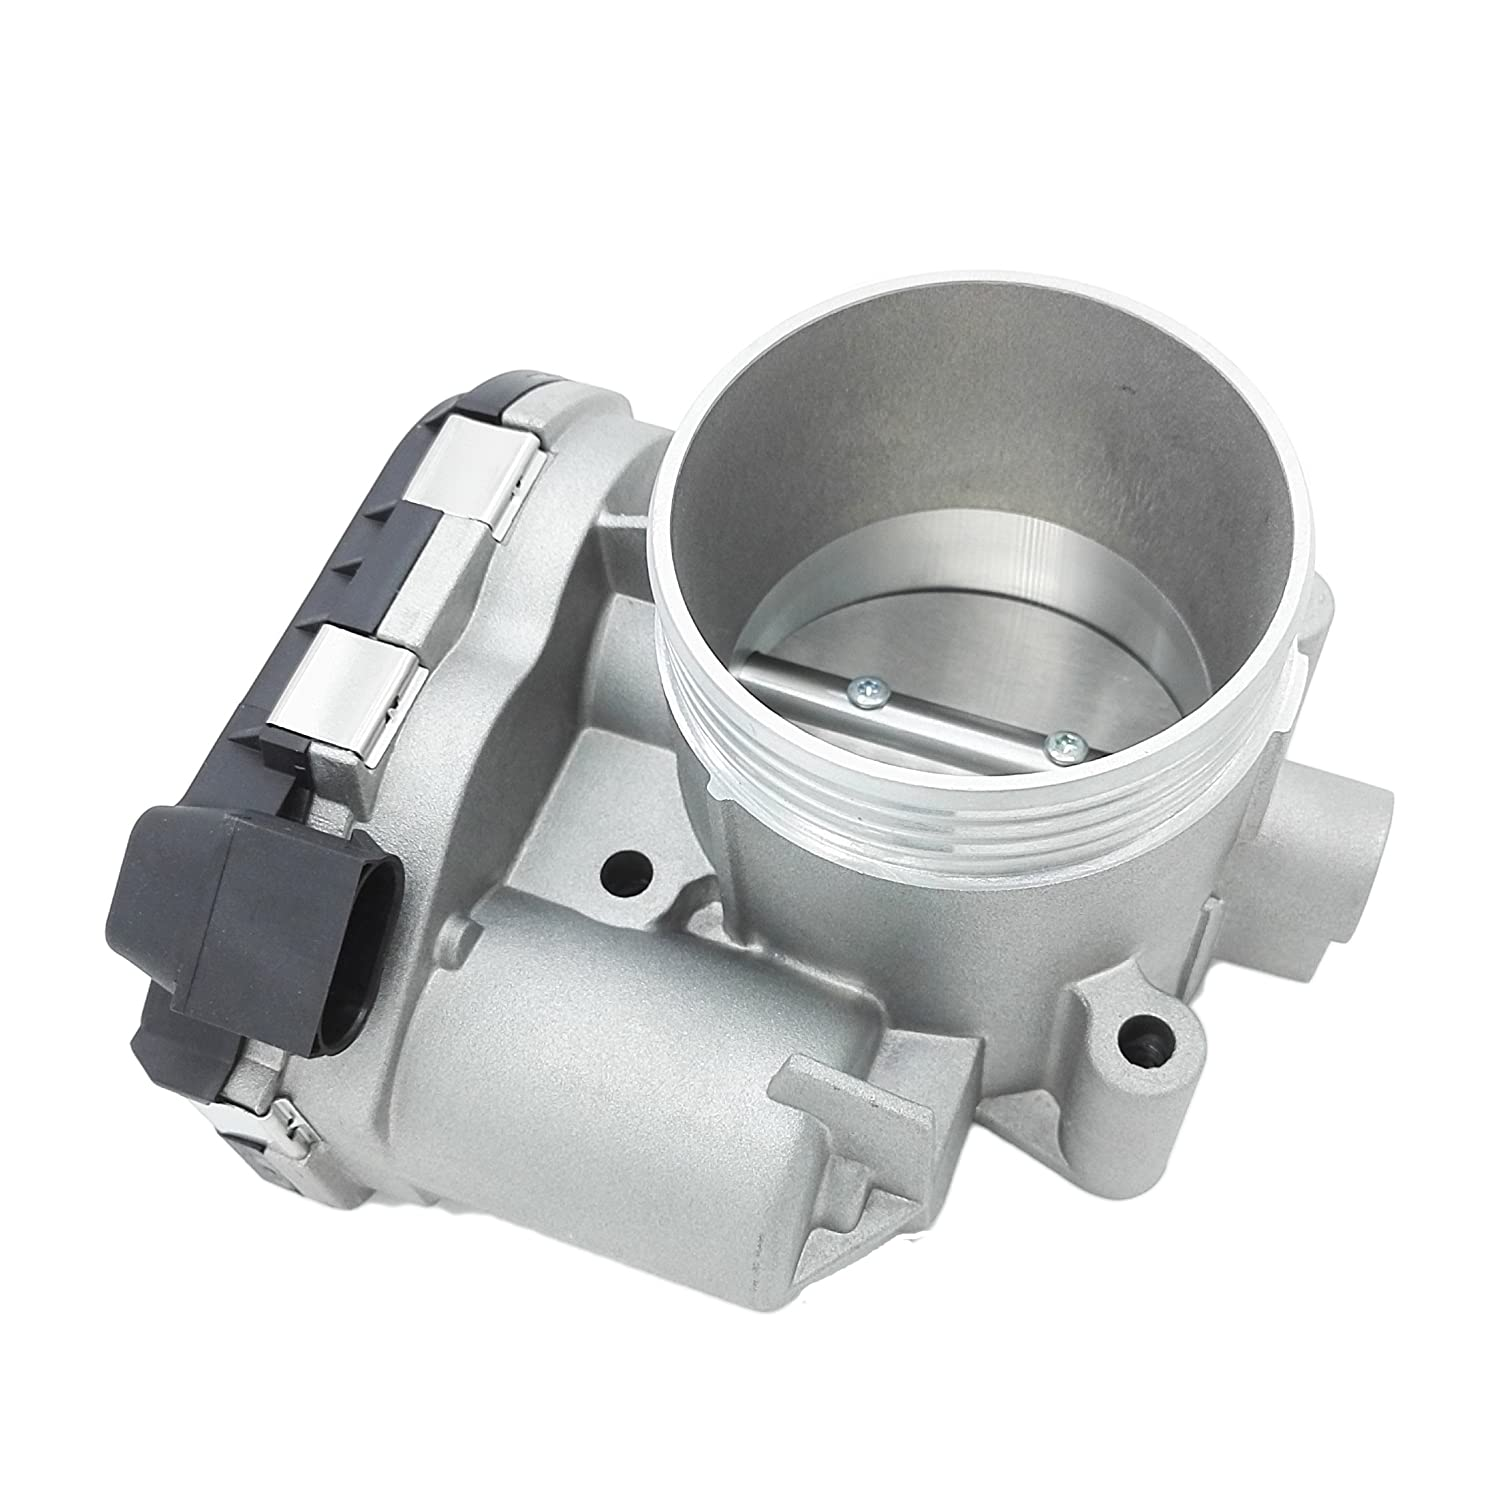 New Throttle Body For Volvo C70 S60 S80 V70 XC70 XC90 30711554 0280750131 Yupin Auto Parts Co.; Ltd.